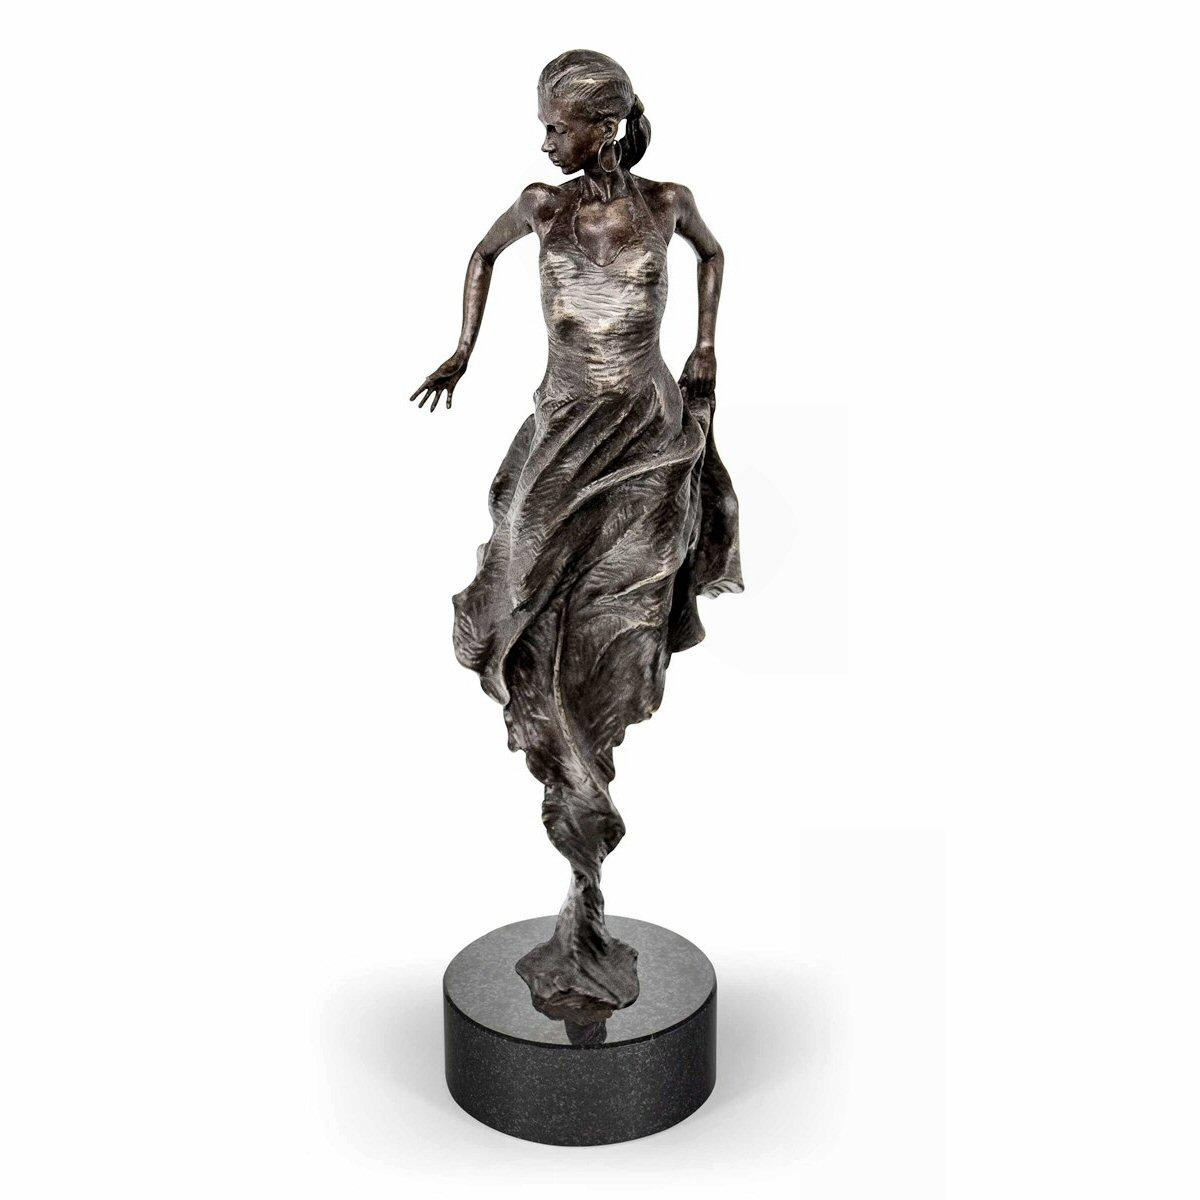 Flamenco Dancer - Bronze Sculpture by Carl Payne - DeMontfort SPAC036